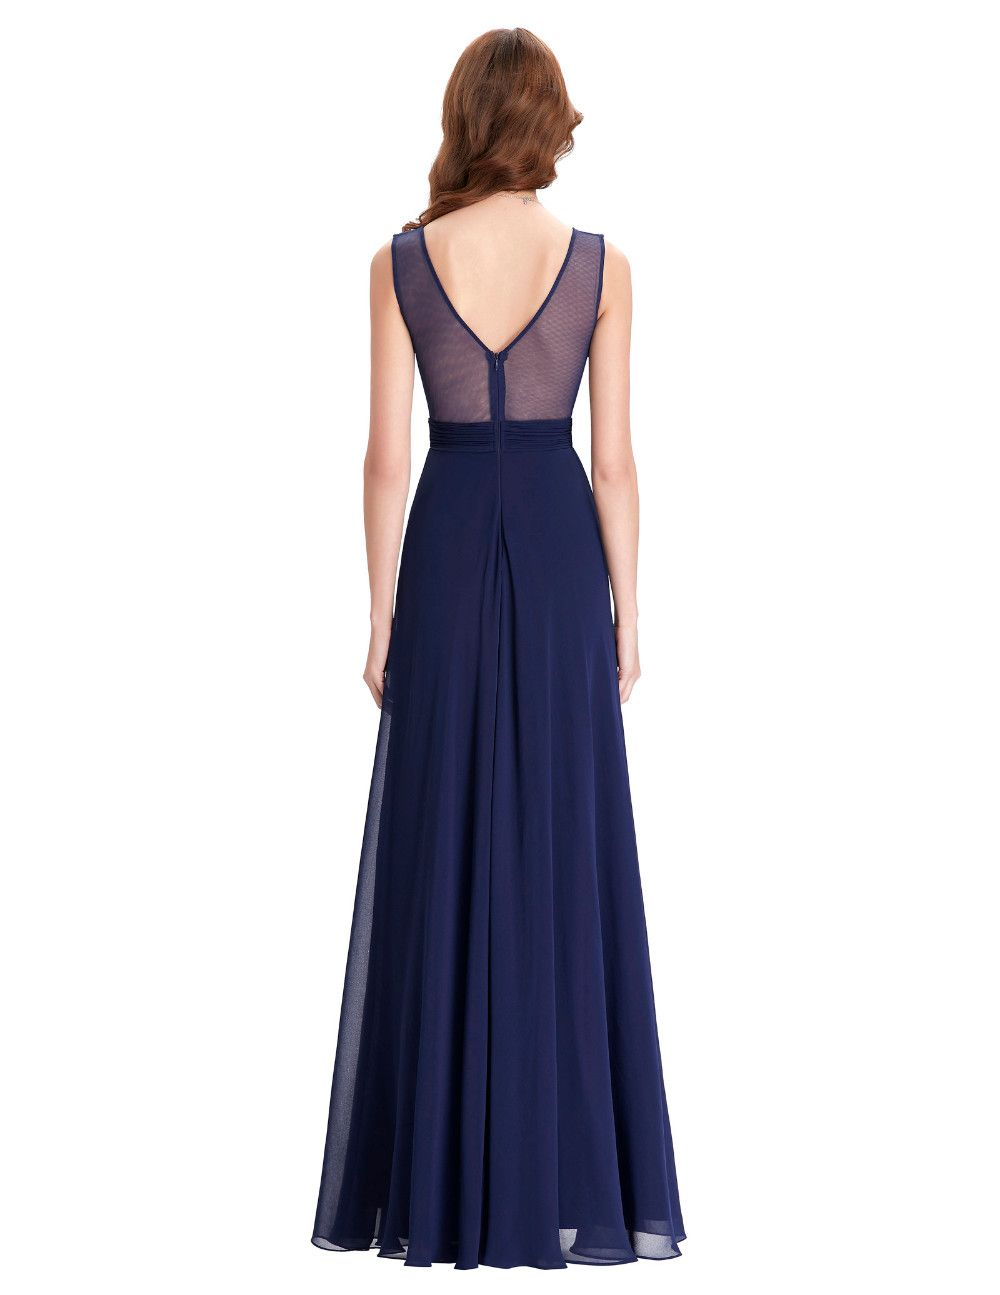 Western Junior Bridesmaid Dresses Long Navy Blue Wedding Party Dress ...